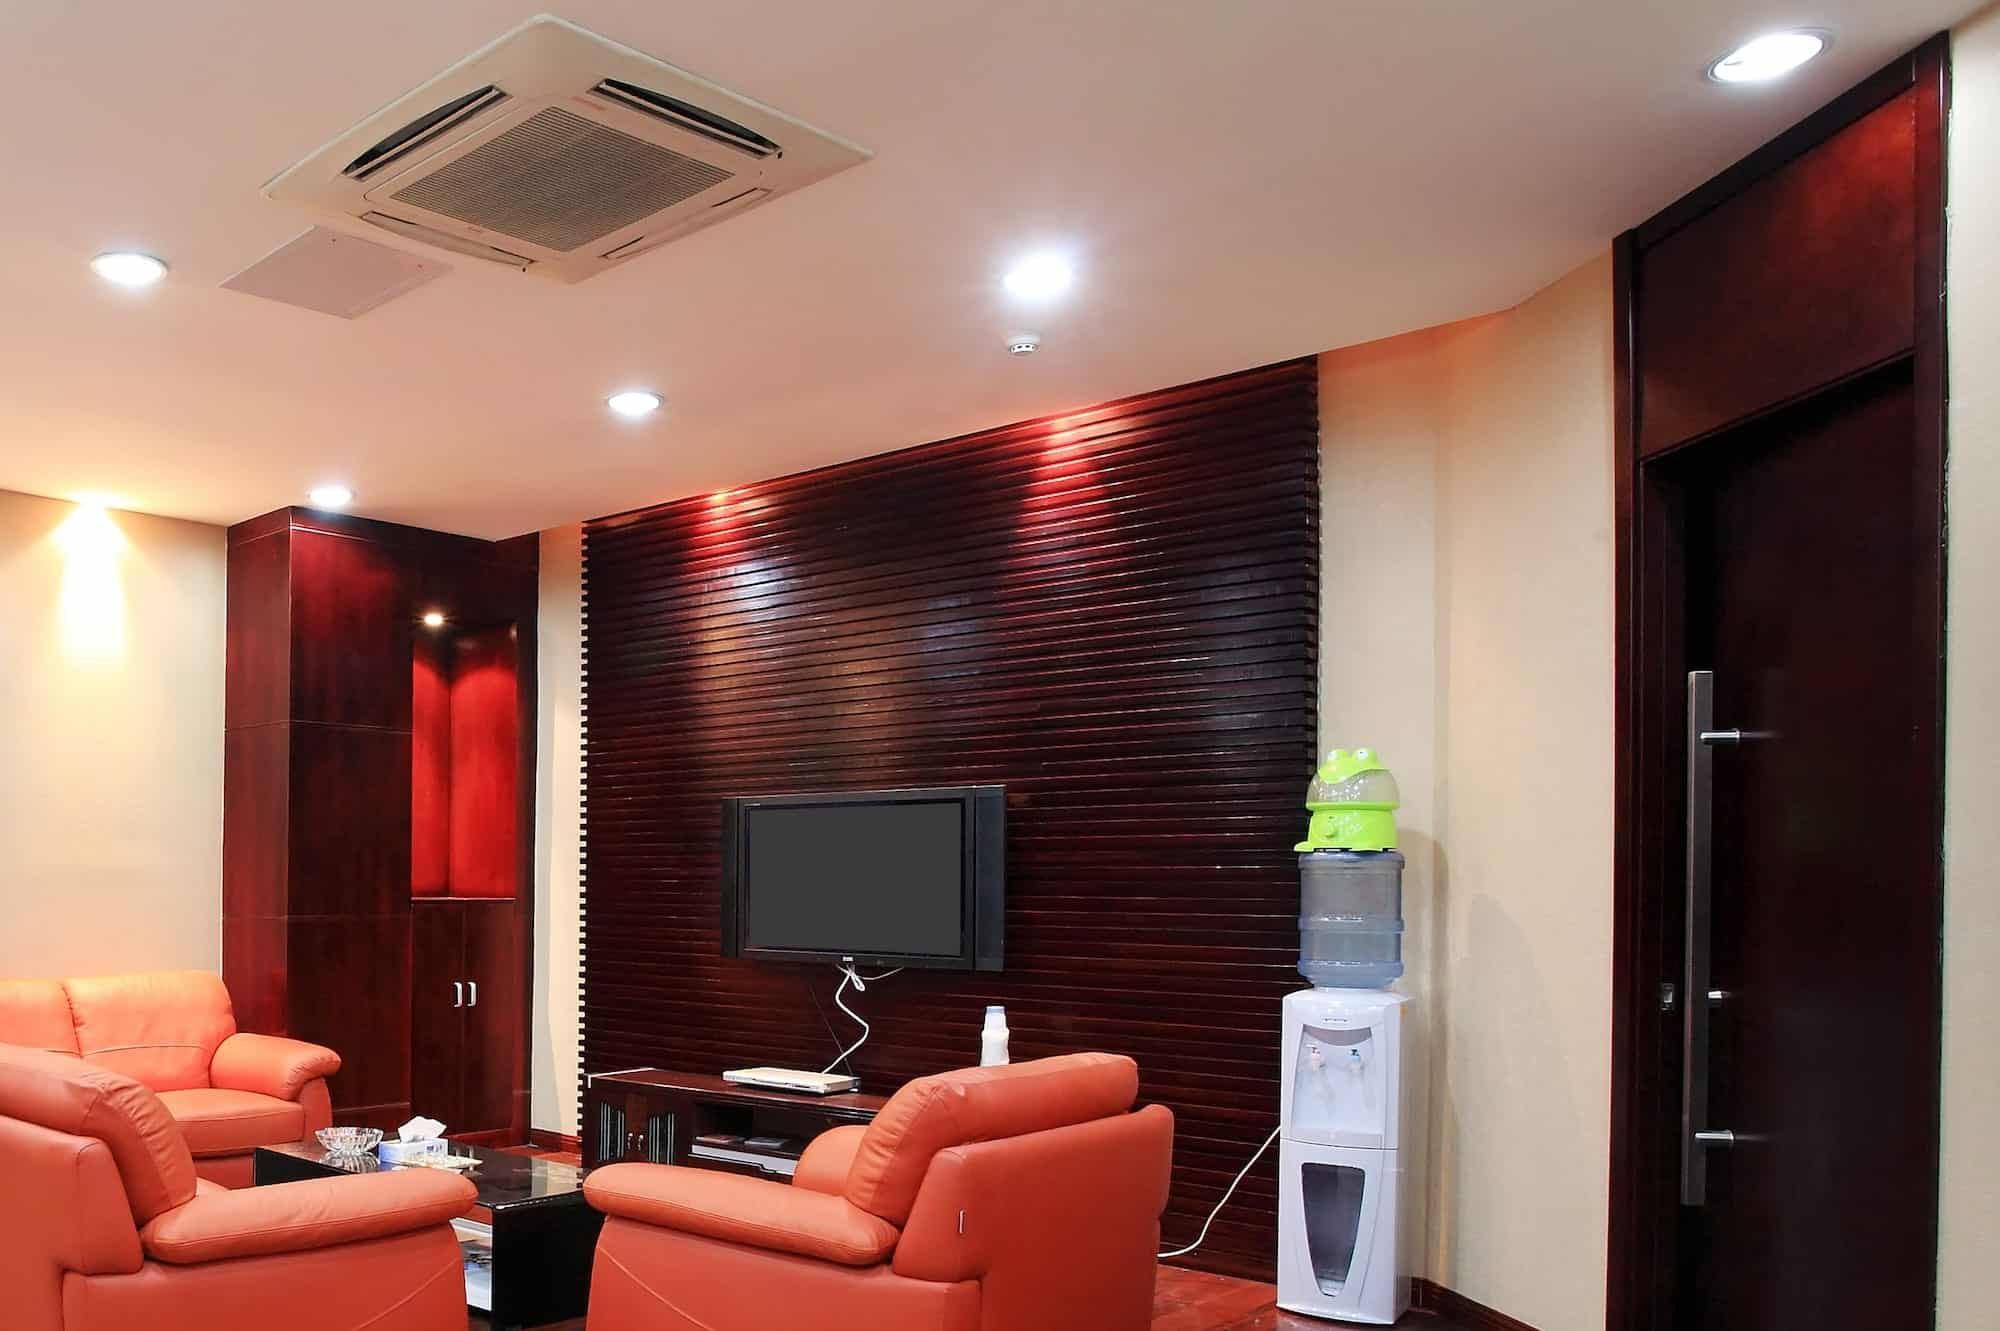 Multi-split air conditioning system in a residential living room with a red interior